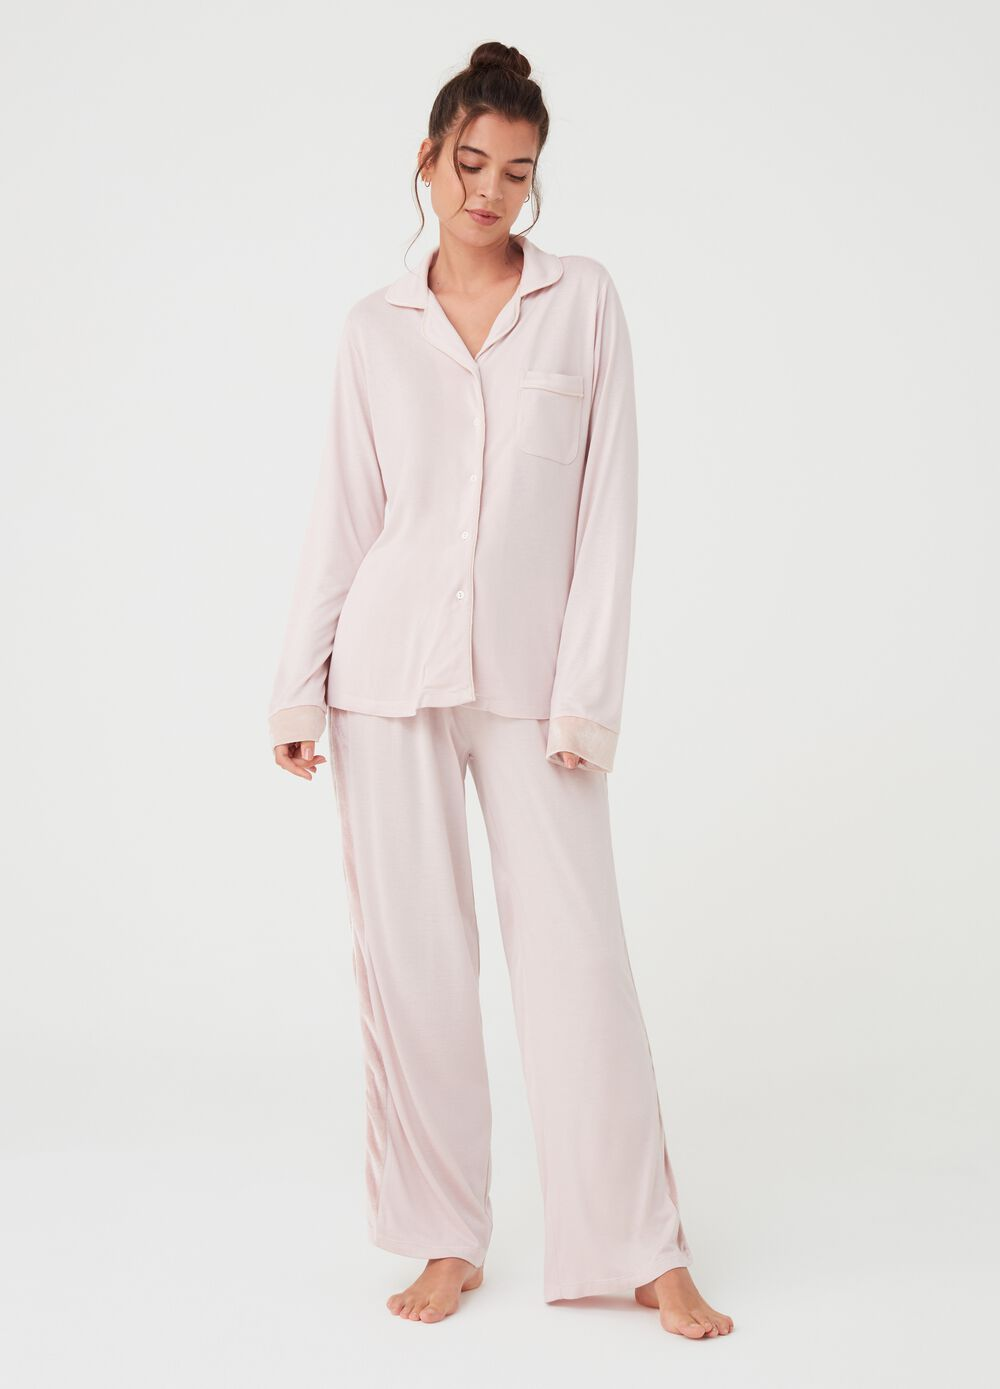 Long 100% viscose pyjama trousers